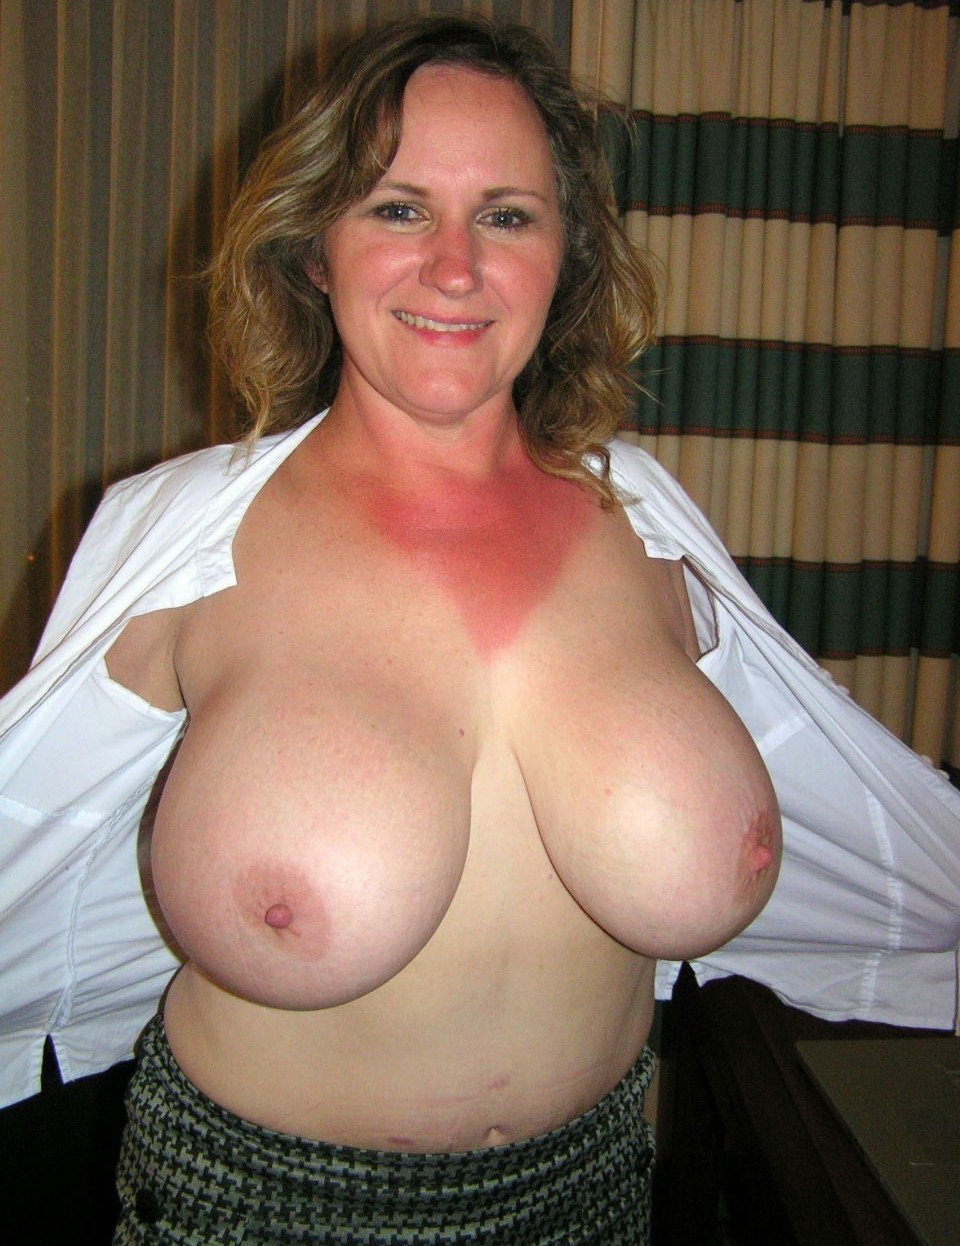 Nude older women with big boobs